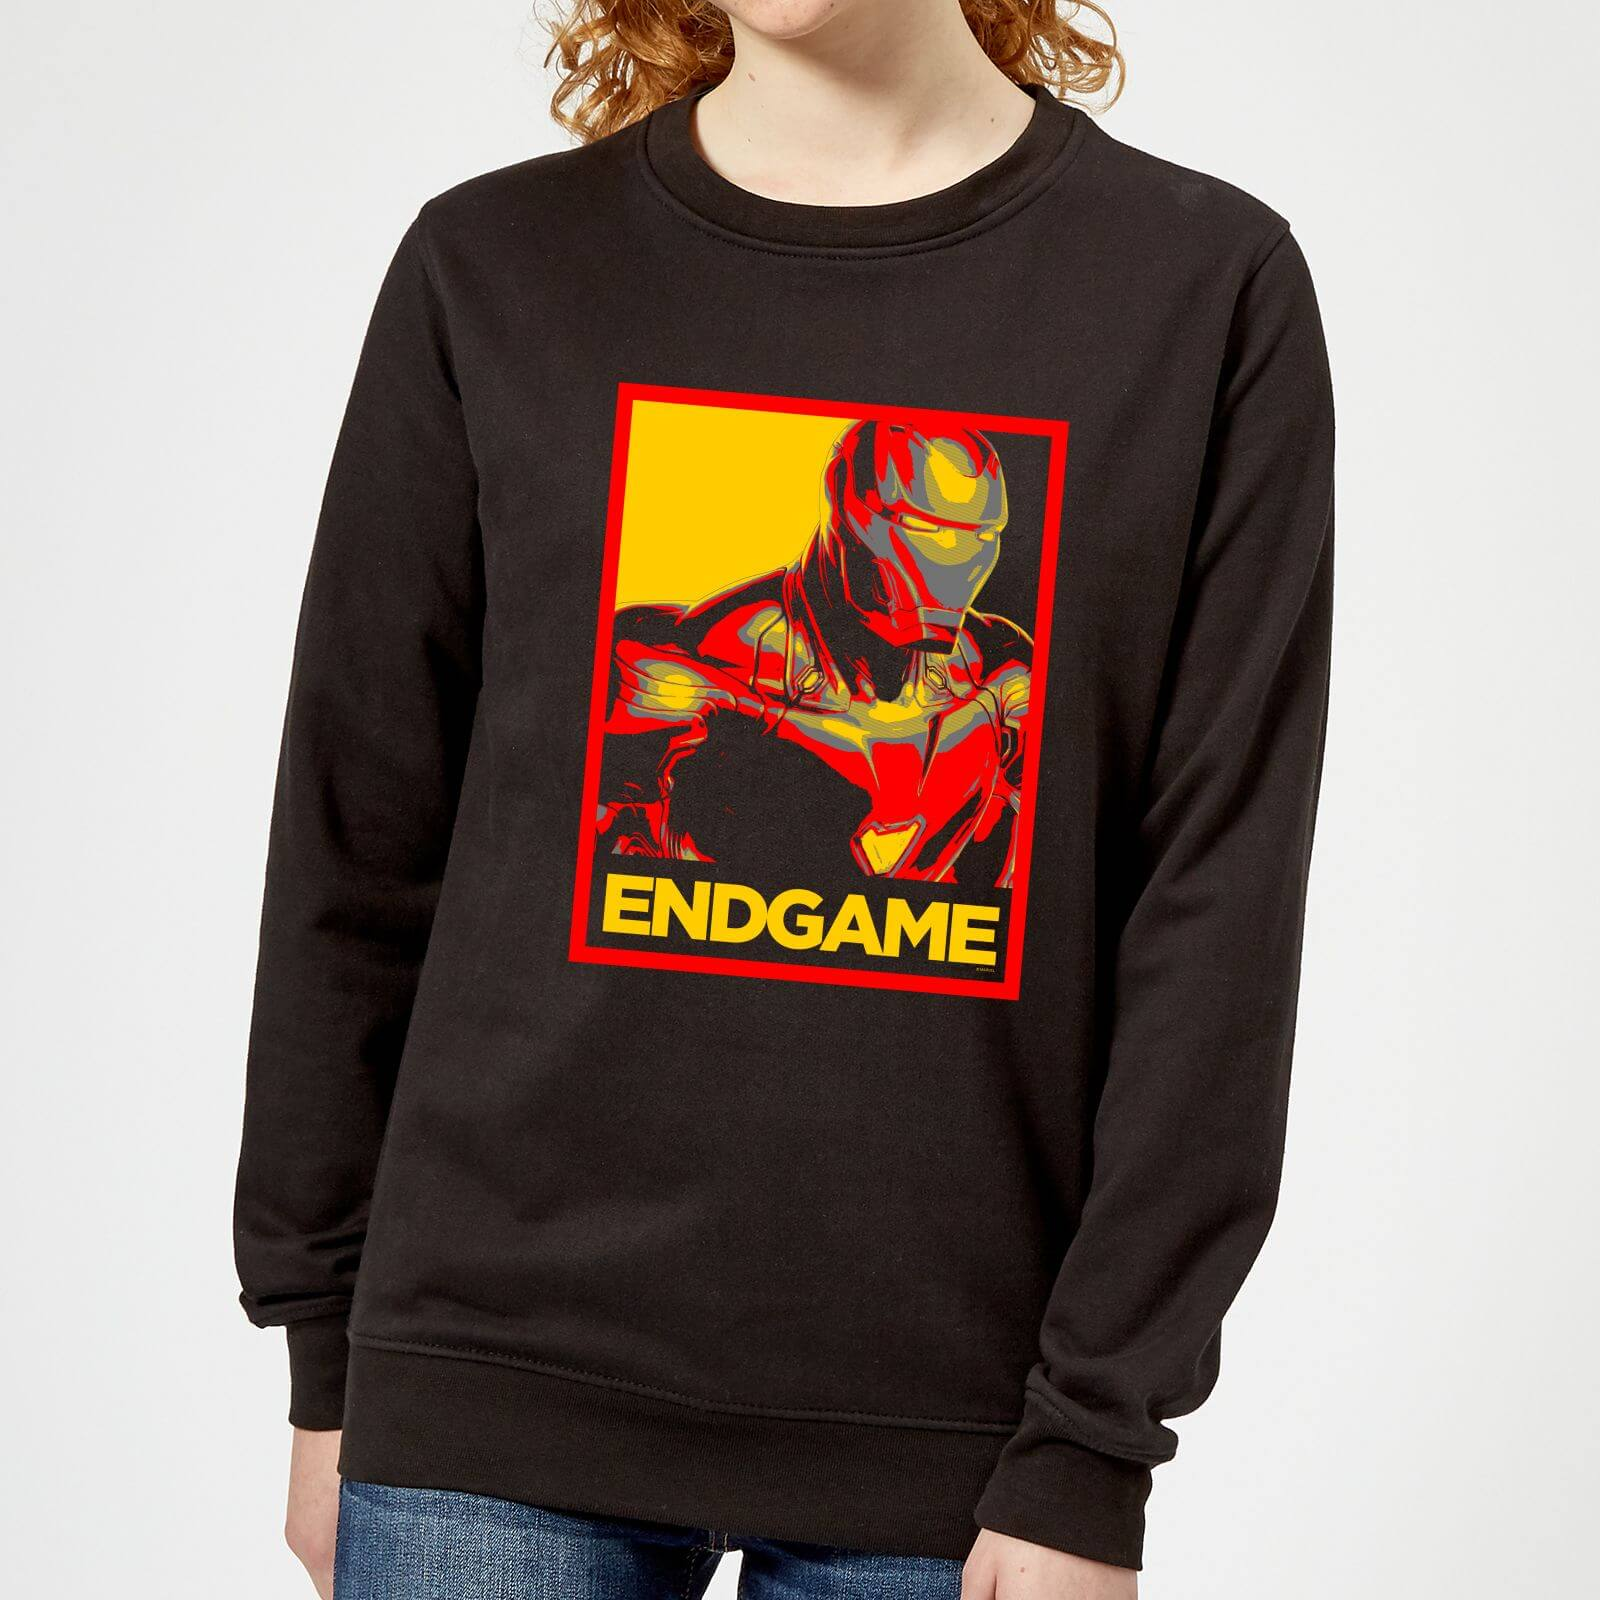 Marvel Avengers Endgame Iron Man Poster Women's Sweatshirt - Black - XXL - Black